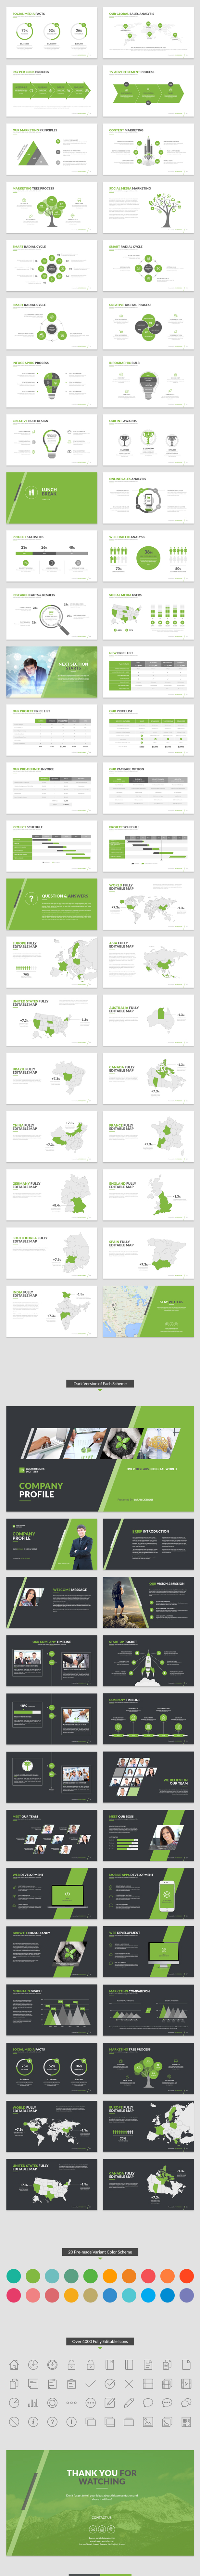 Company Profile PowerPoint Template - 1